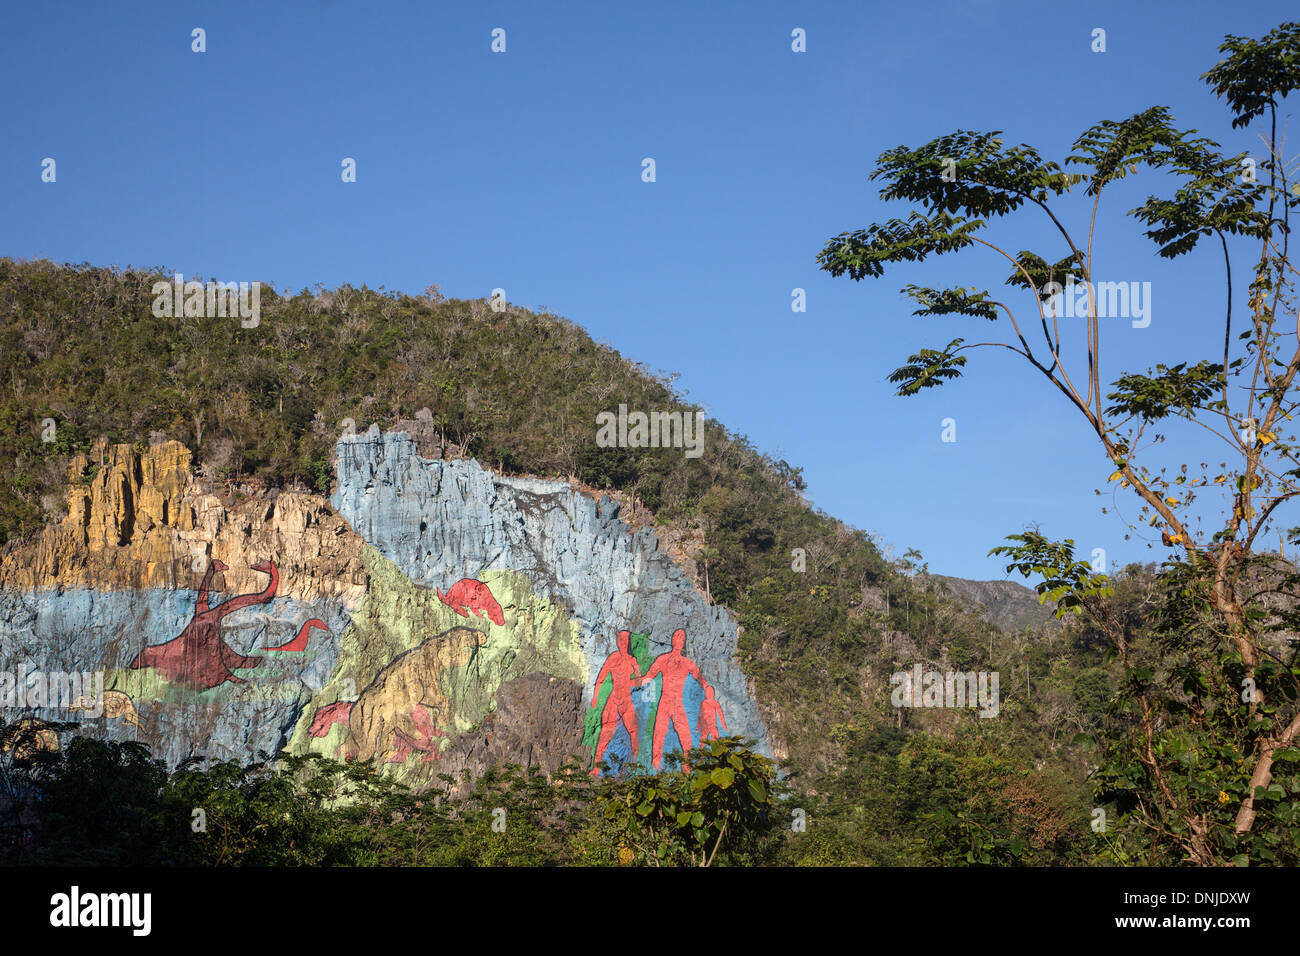 MURAL OF EVOLUTION, PREHISTORIC WALL (MURAL DE LA PREHISTORIA) COMMISSIONED BY FIDEL CASTRO IN 1961, PAINTING ON ASLOPE OF A MOGOTE (MOUNTAINOUS LIMESTONE HILLOCK), VINALES VALLEY, LISTED AS A WORLD HERITAGE SITE BY UNESCO, CUBA, THE CARIBBEAN - Stock Image